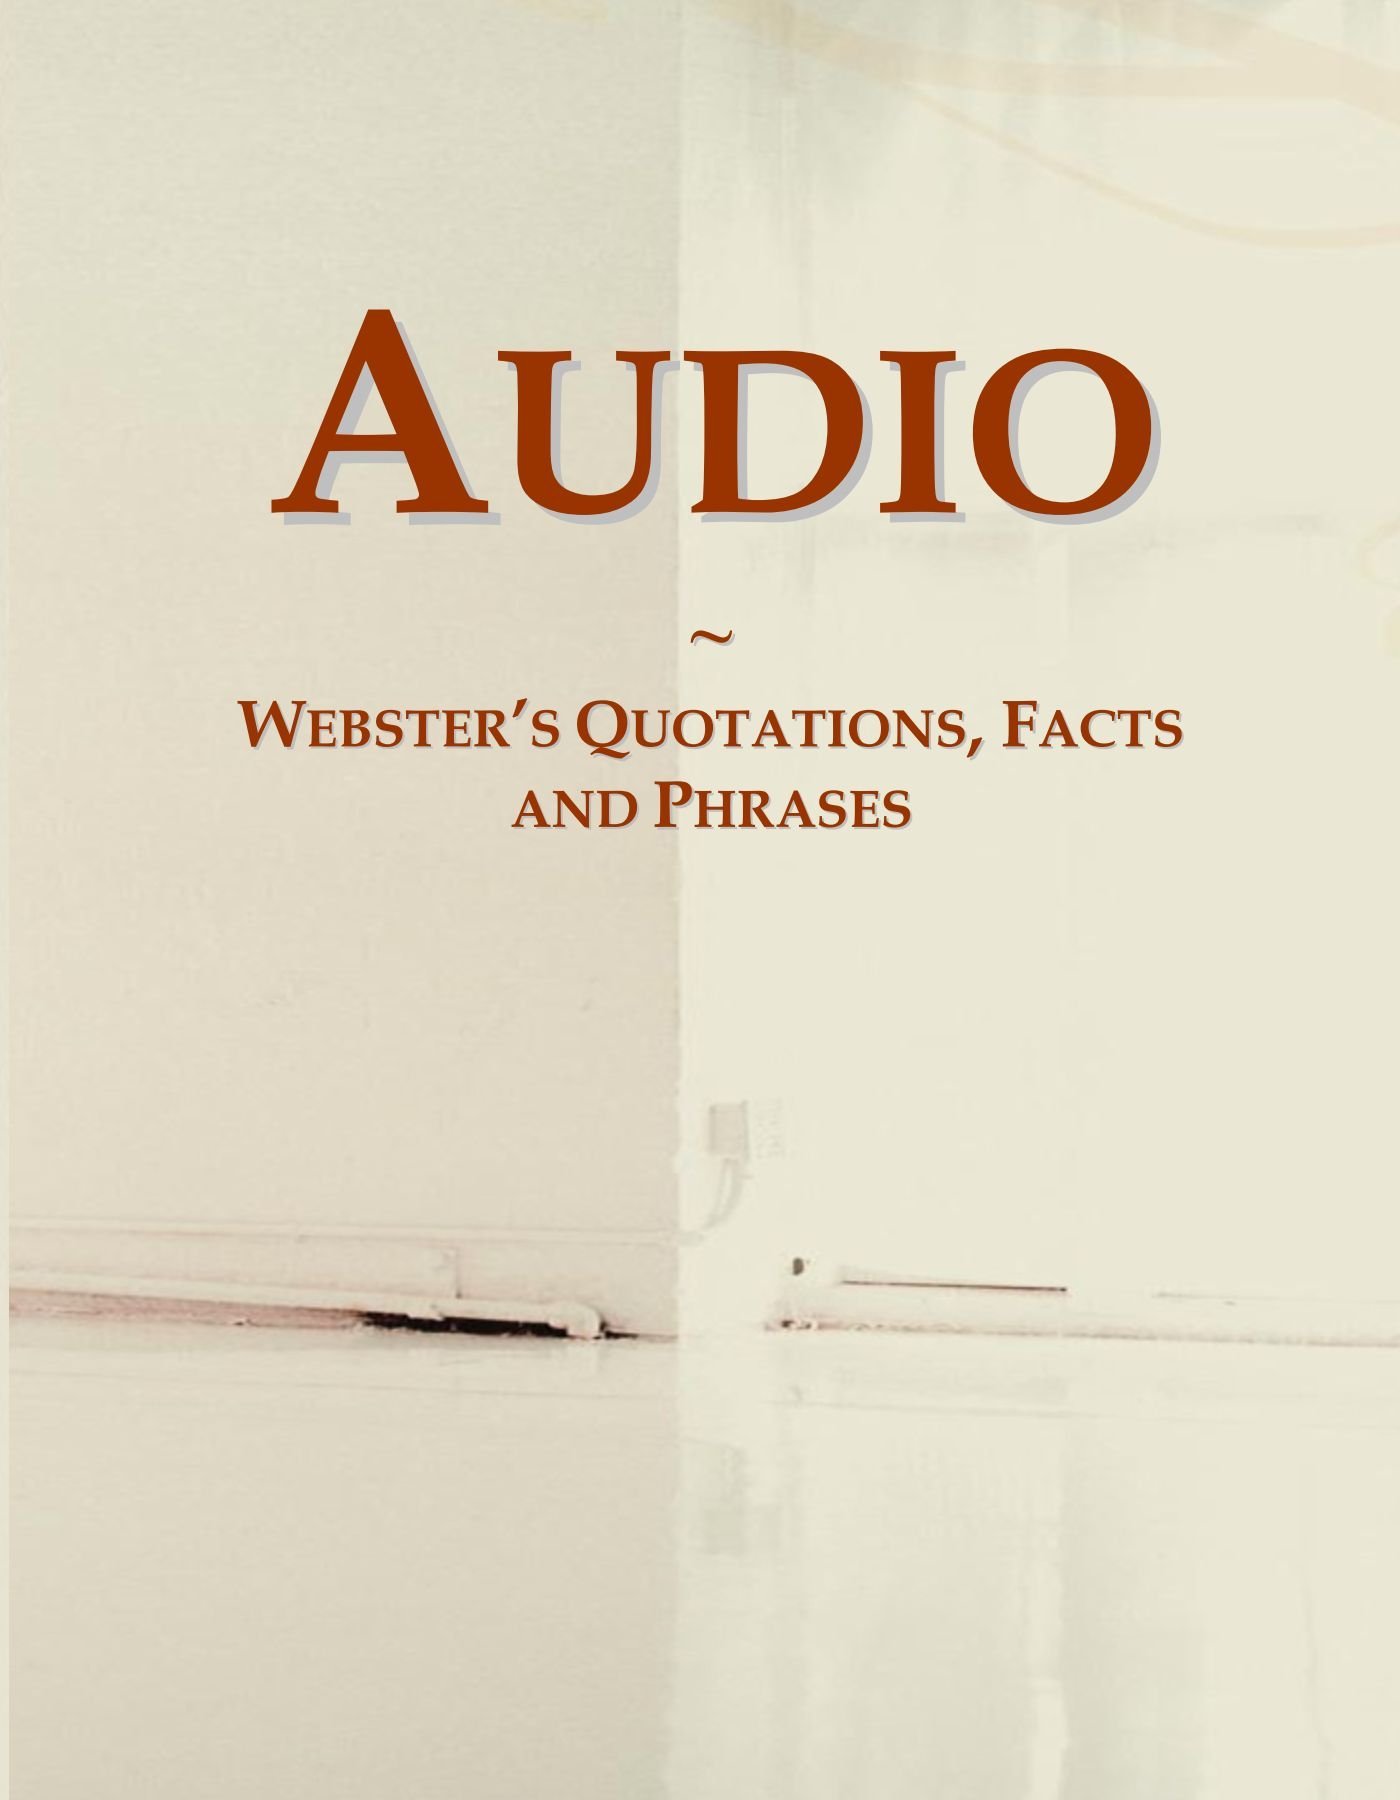 Audio: Webster's Quotations, Facts and Phrases